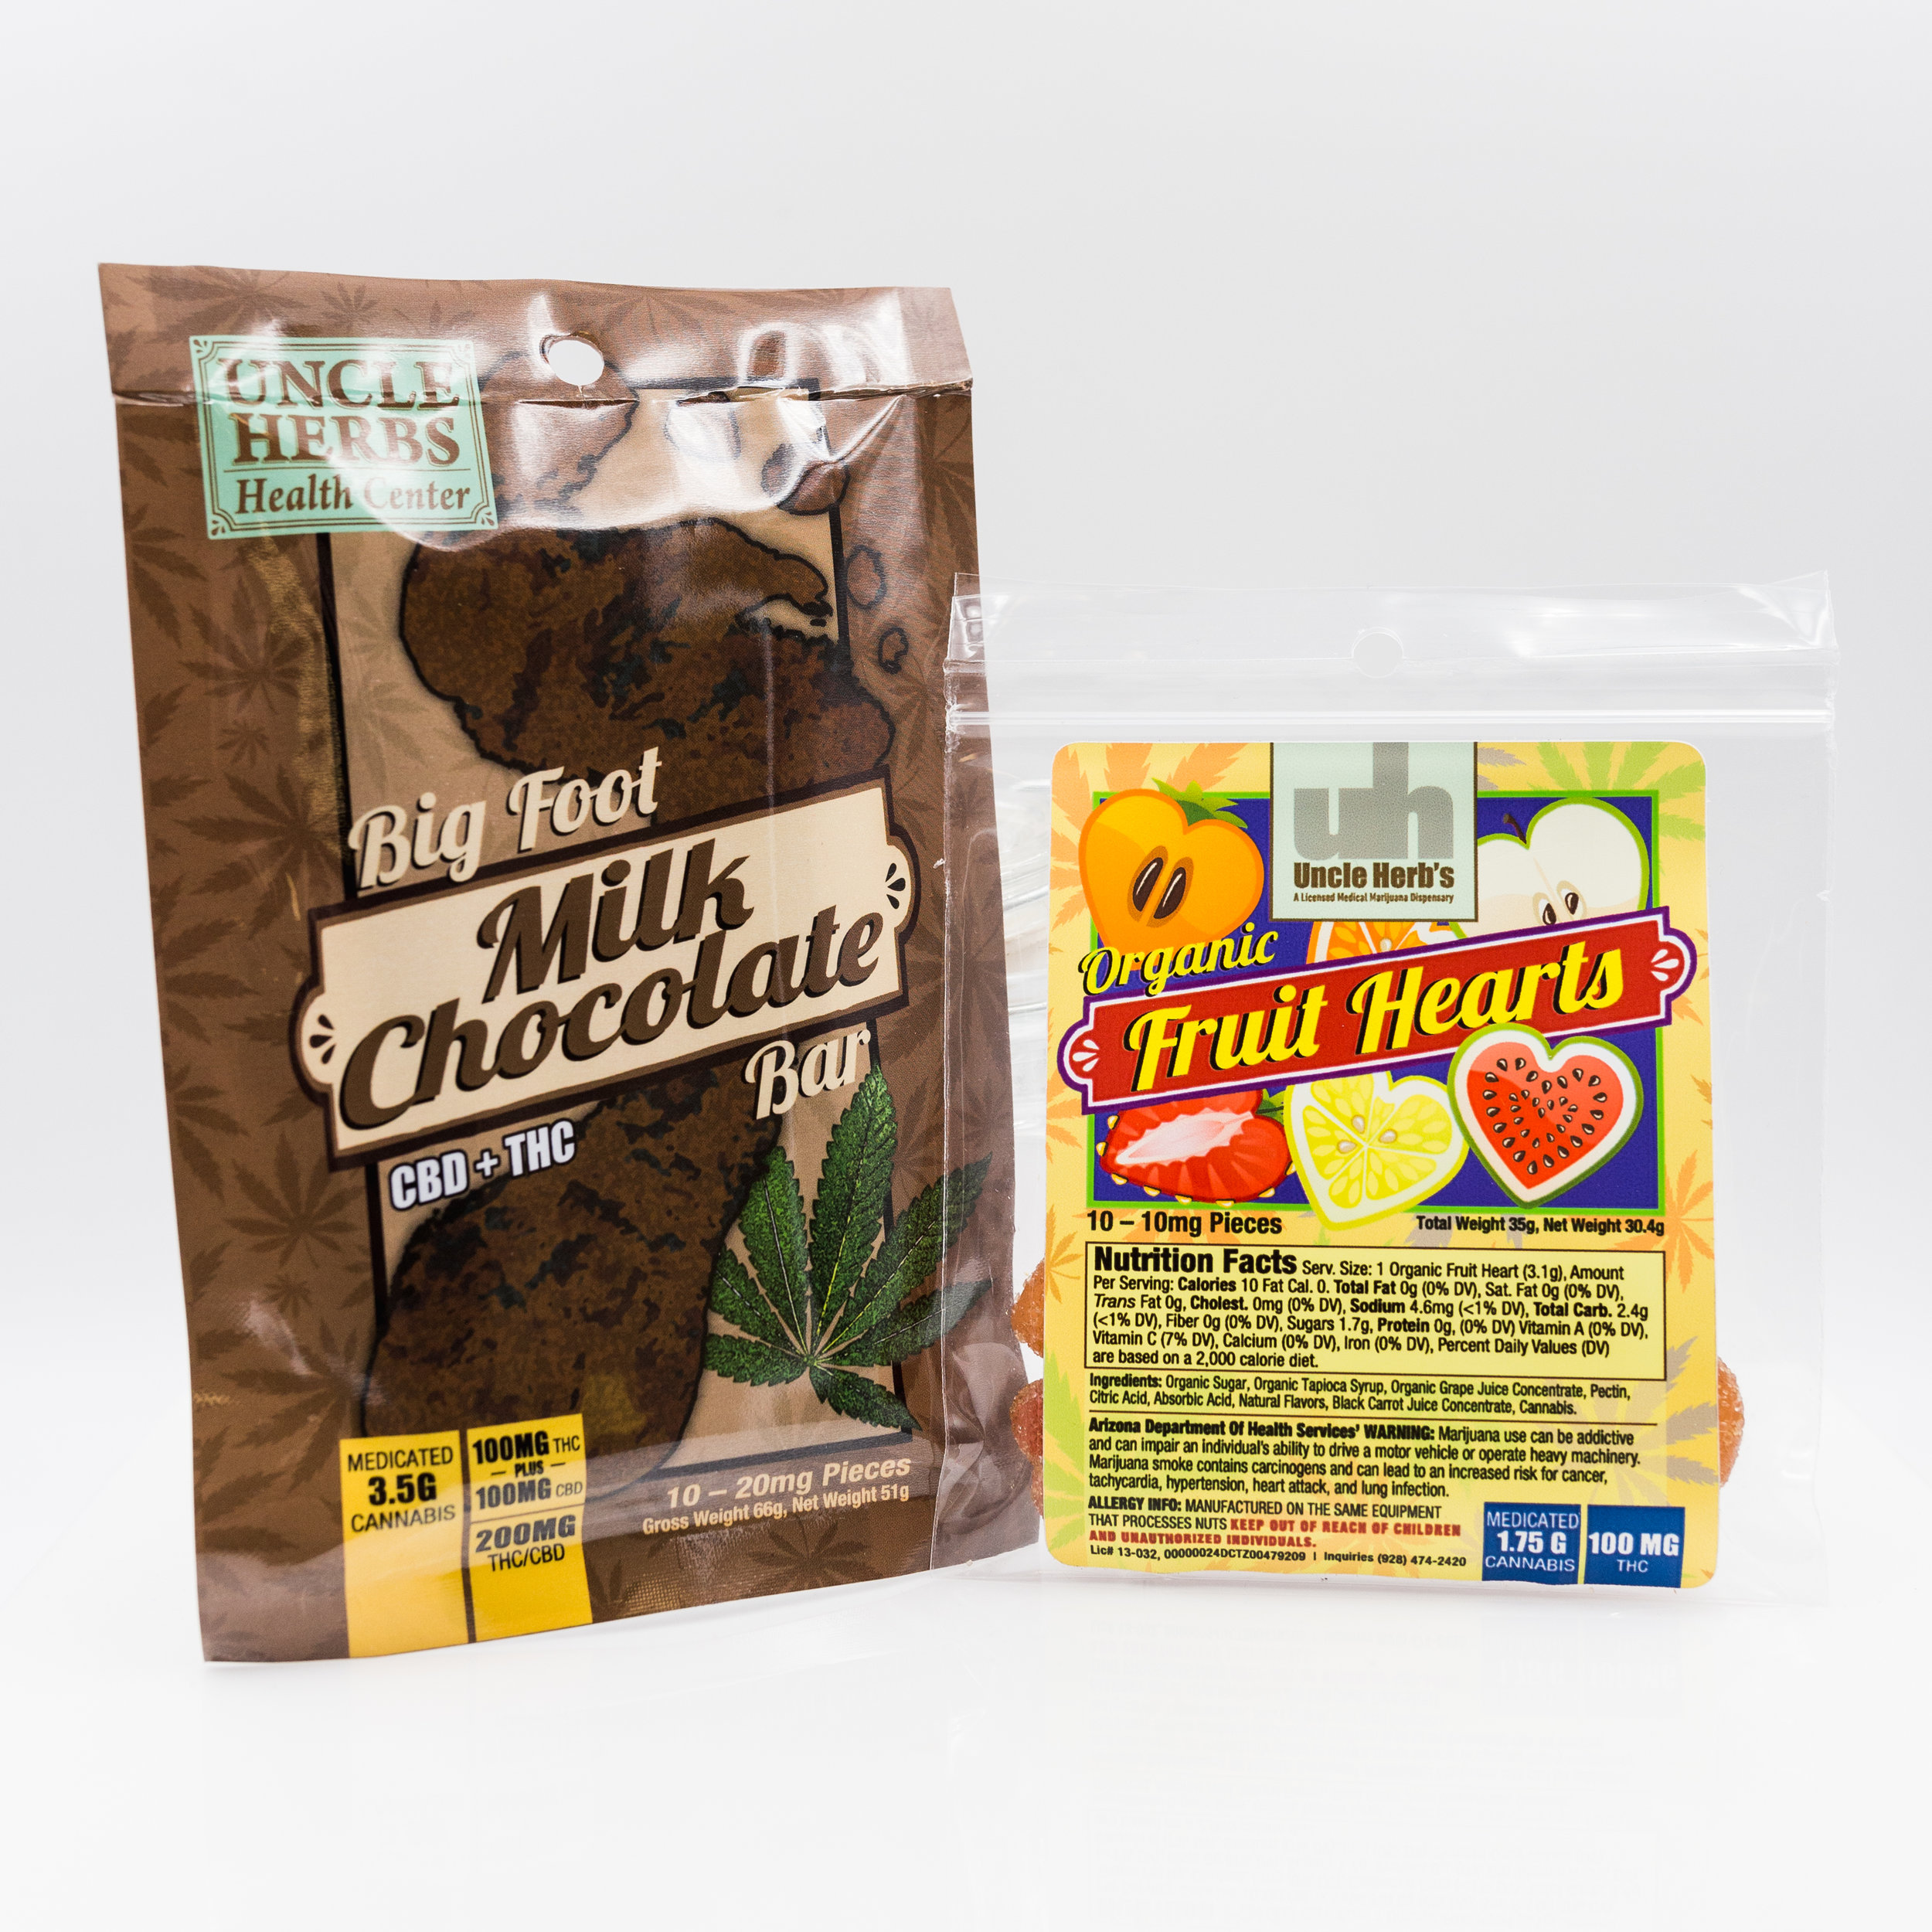 Pictured: Uncle Herbs Health Center 1:1 CBD/THC Chocolate Bar and Organic Fruit Hearts